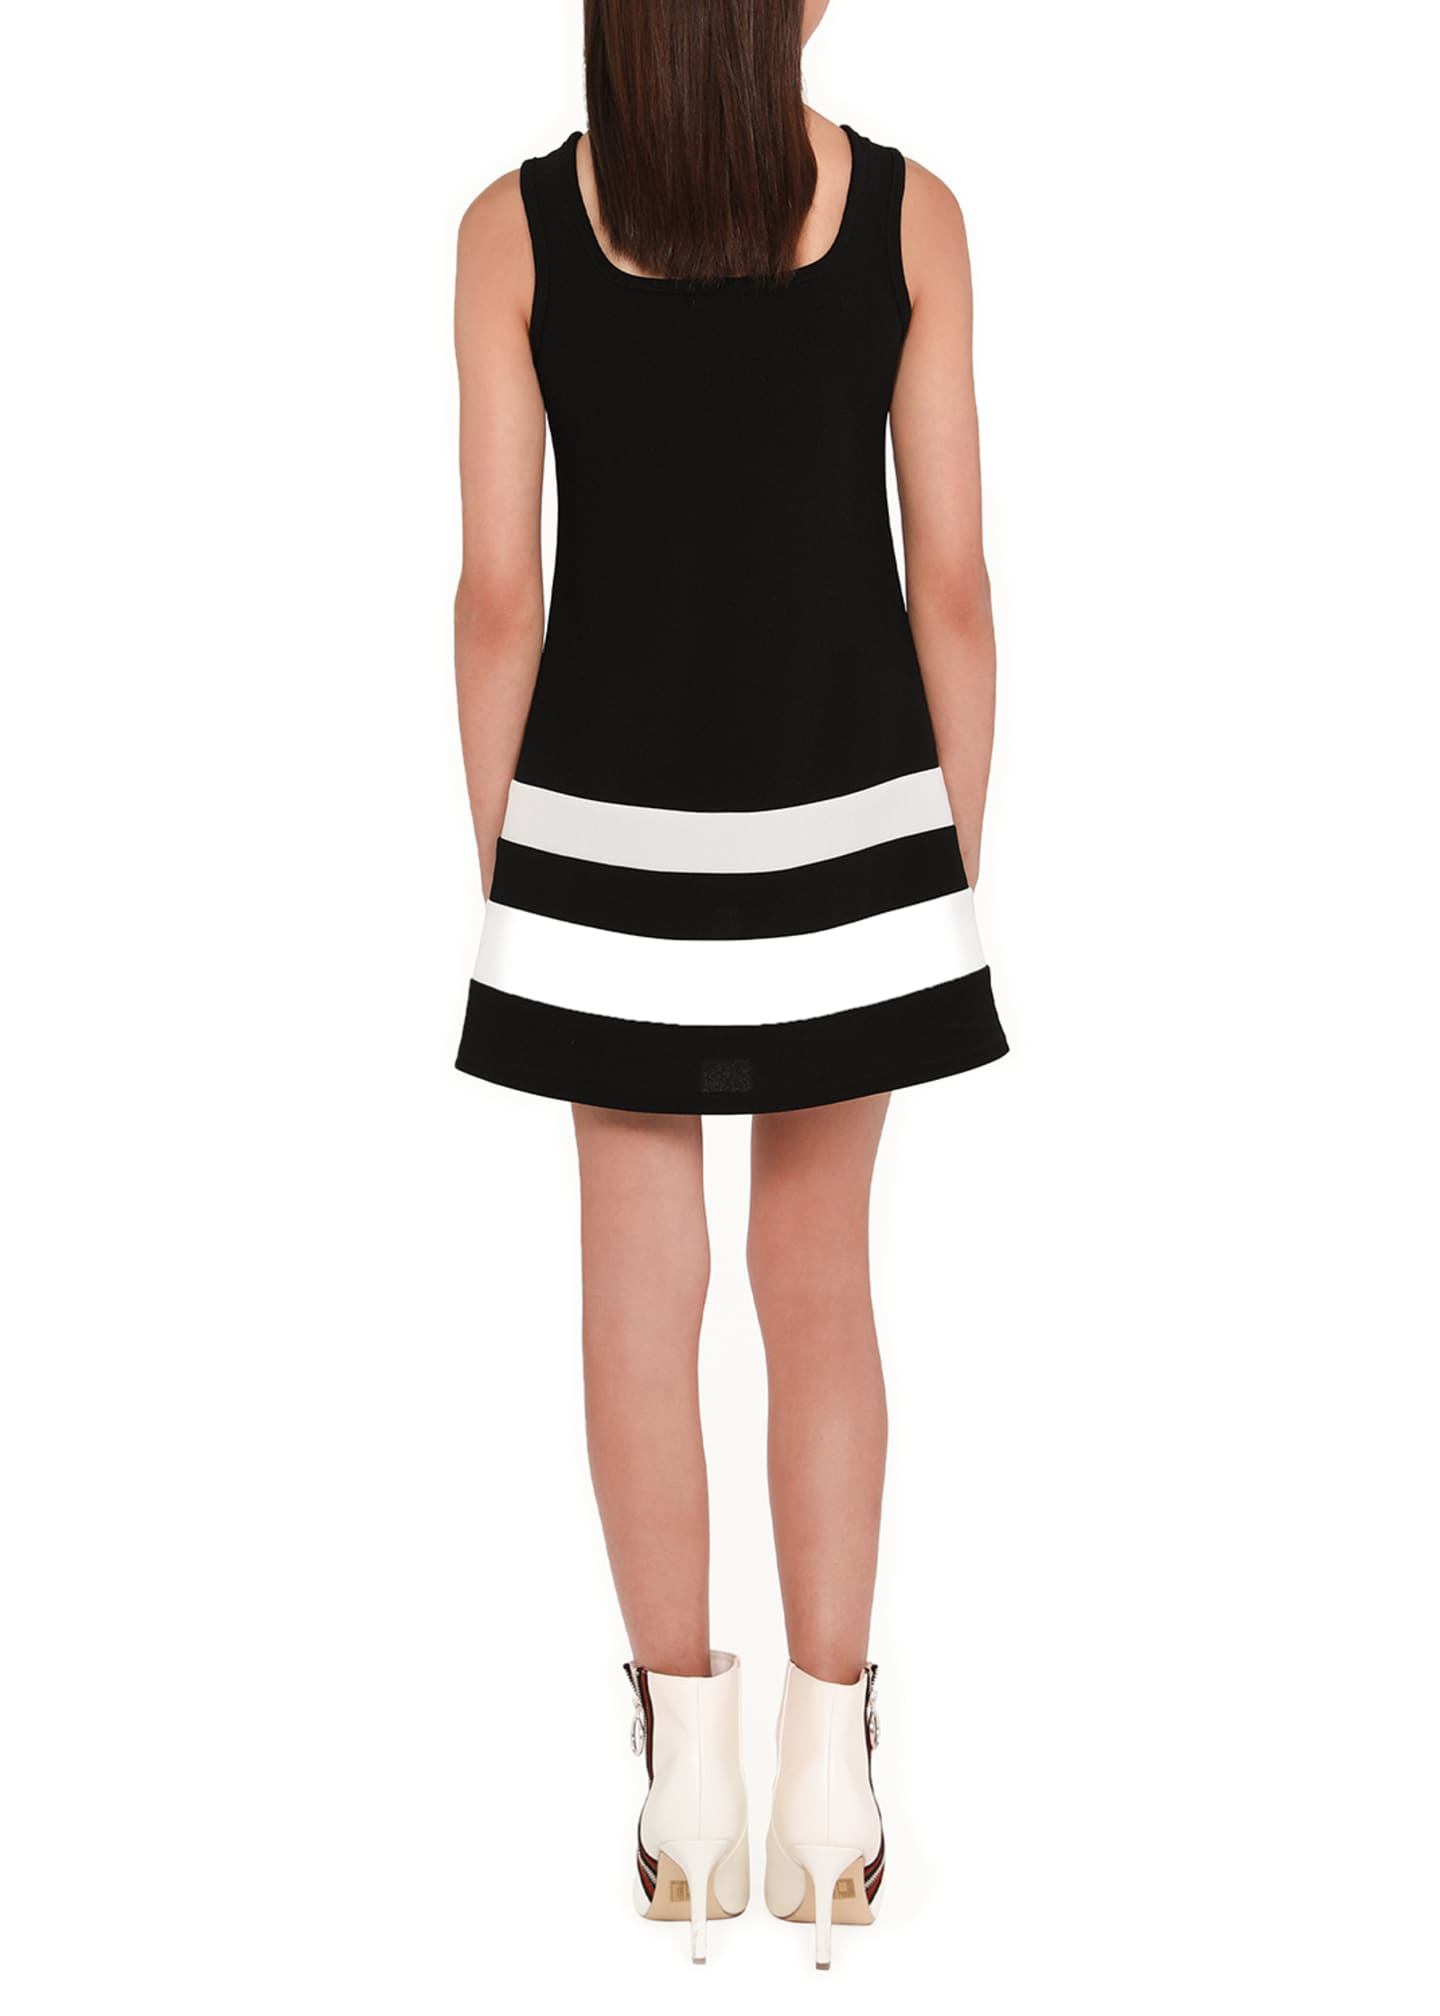 Image 2 of 2: The Austin Sleeveless Dress, Size S-XL